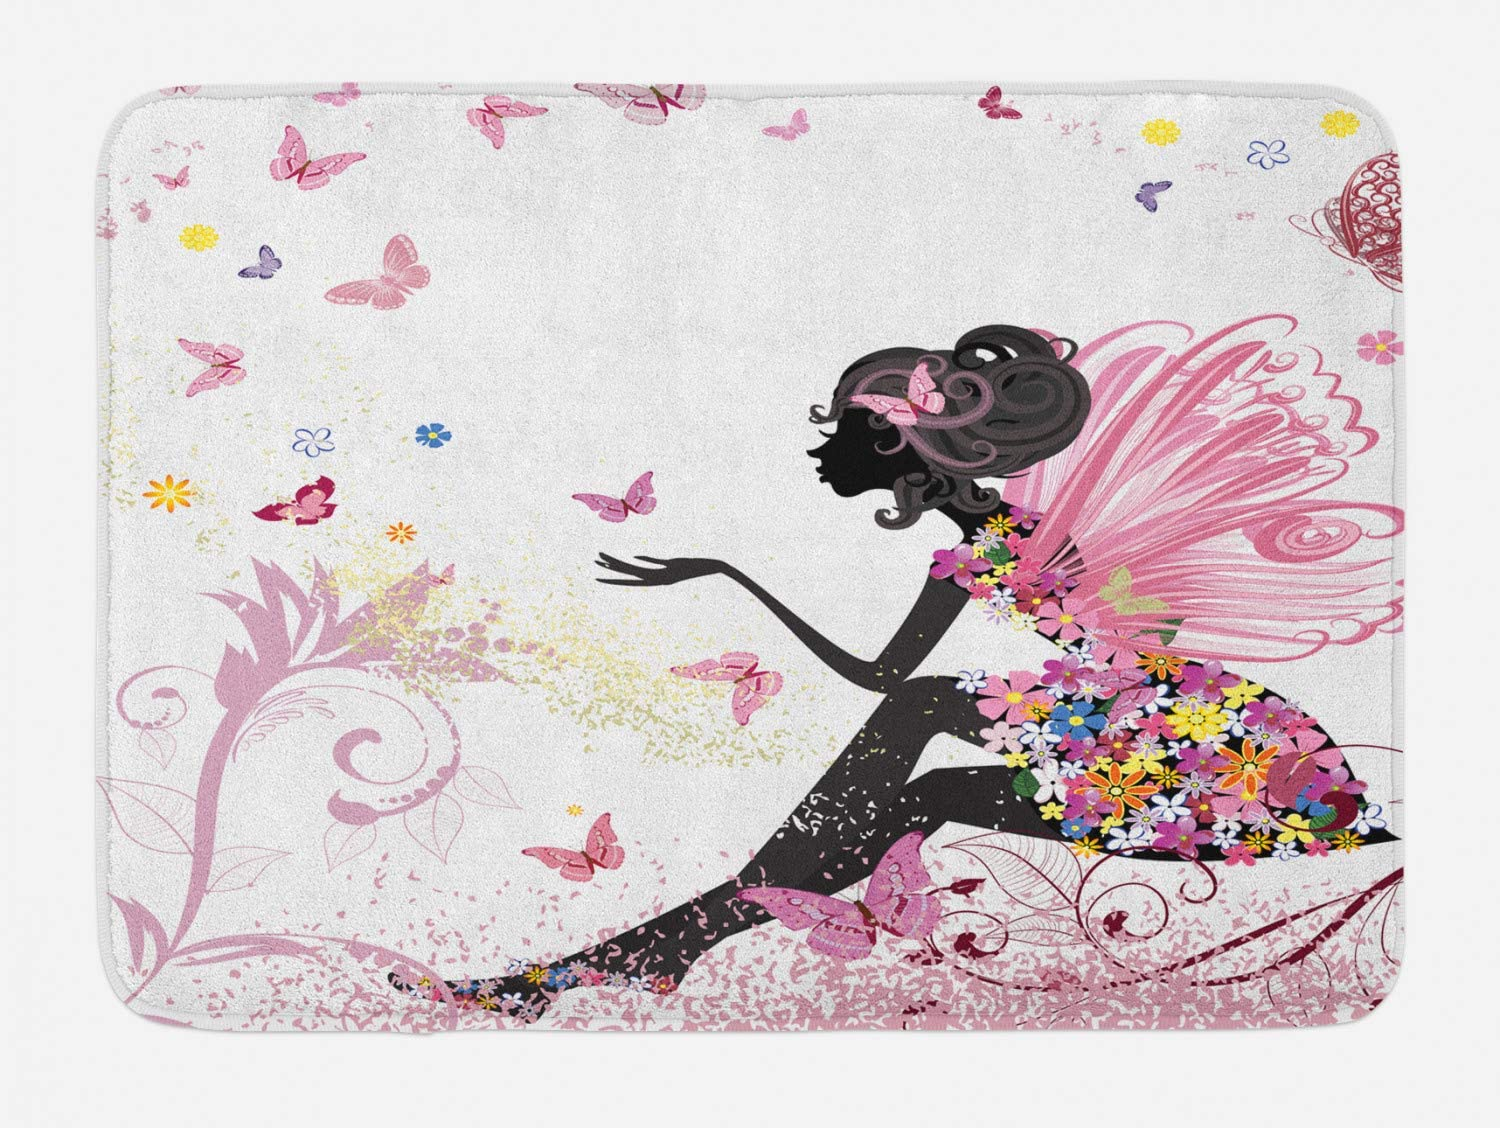 Ambesonne Fantasy Bath Mat, Fairy Girl with Wings in a Floral Dress Fantasy Garden Flying Butterflies, Plush Bathroom Decor Mat with Non Slip Backing, 29.5